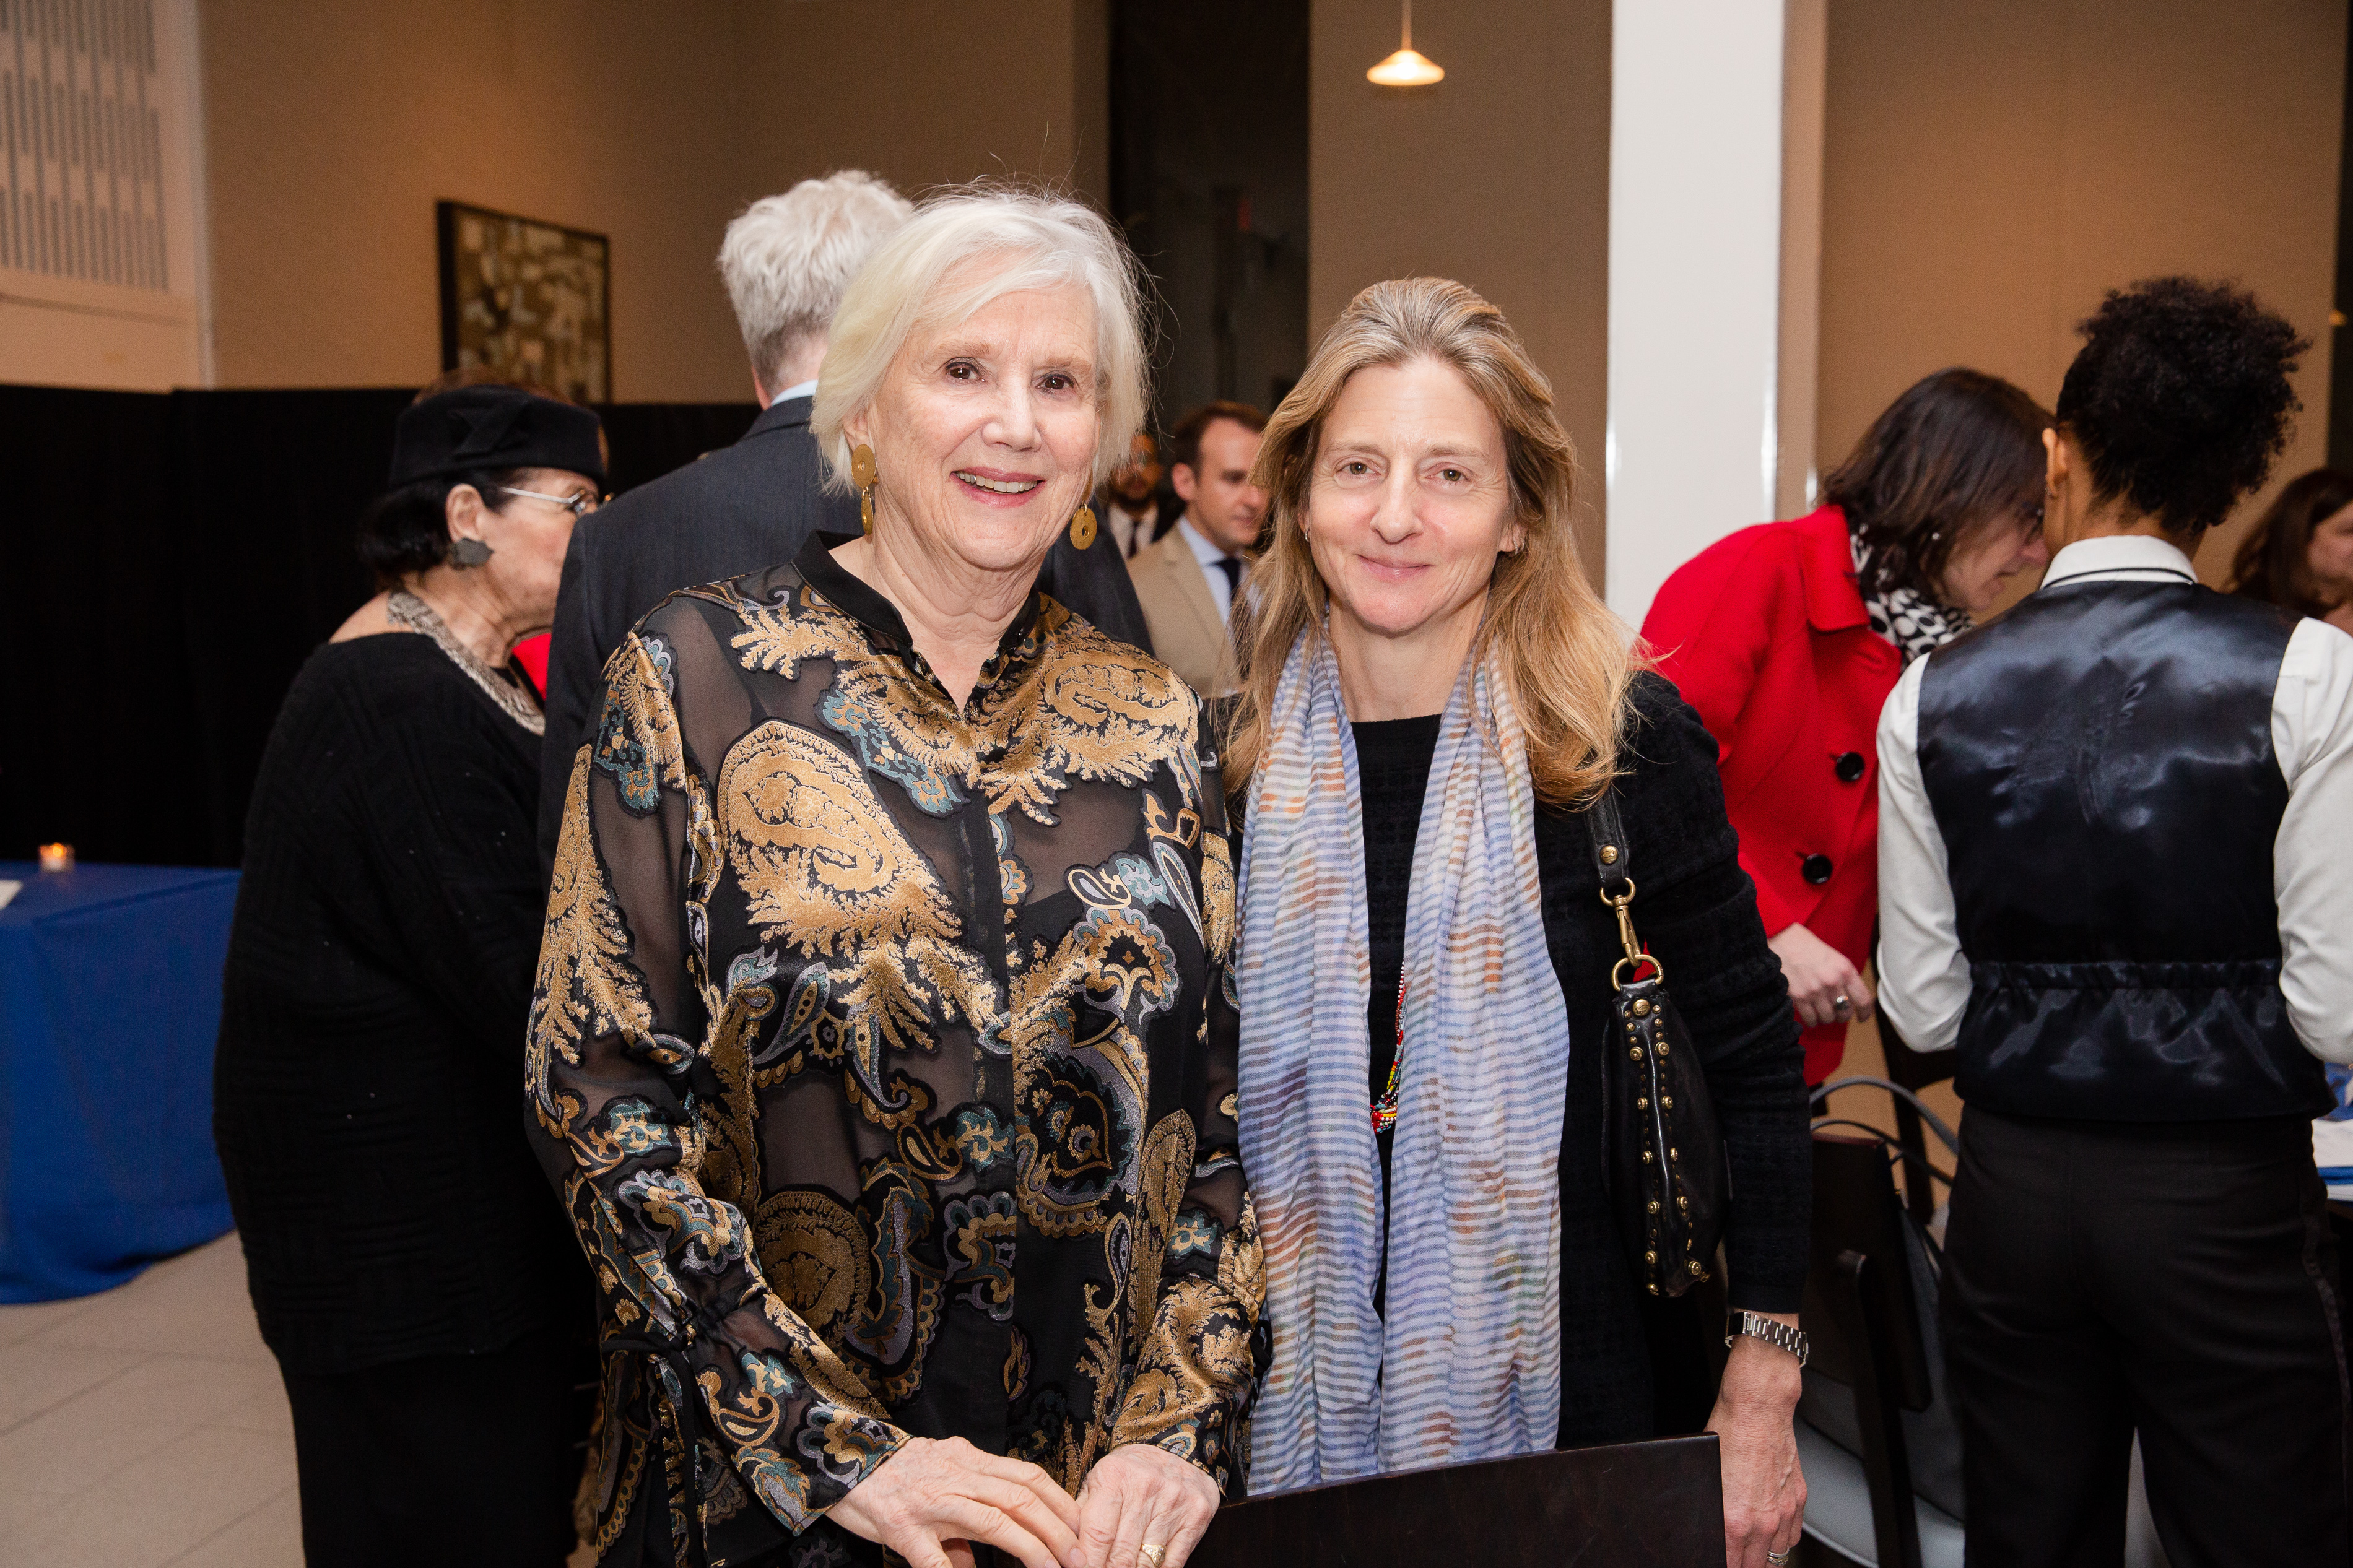 From left, Lorna Goodman and Linn Feidelson.